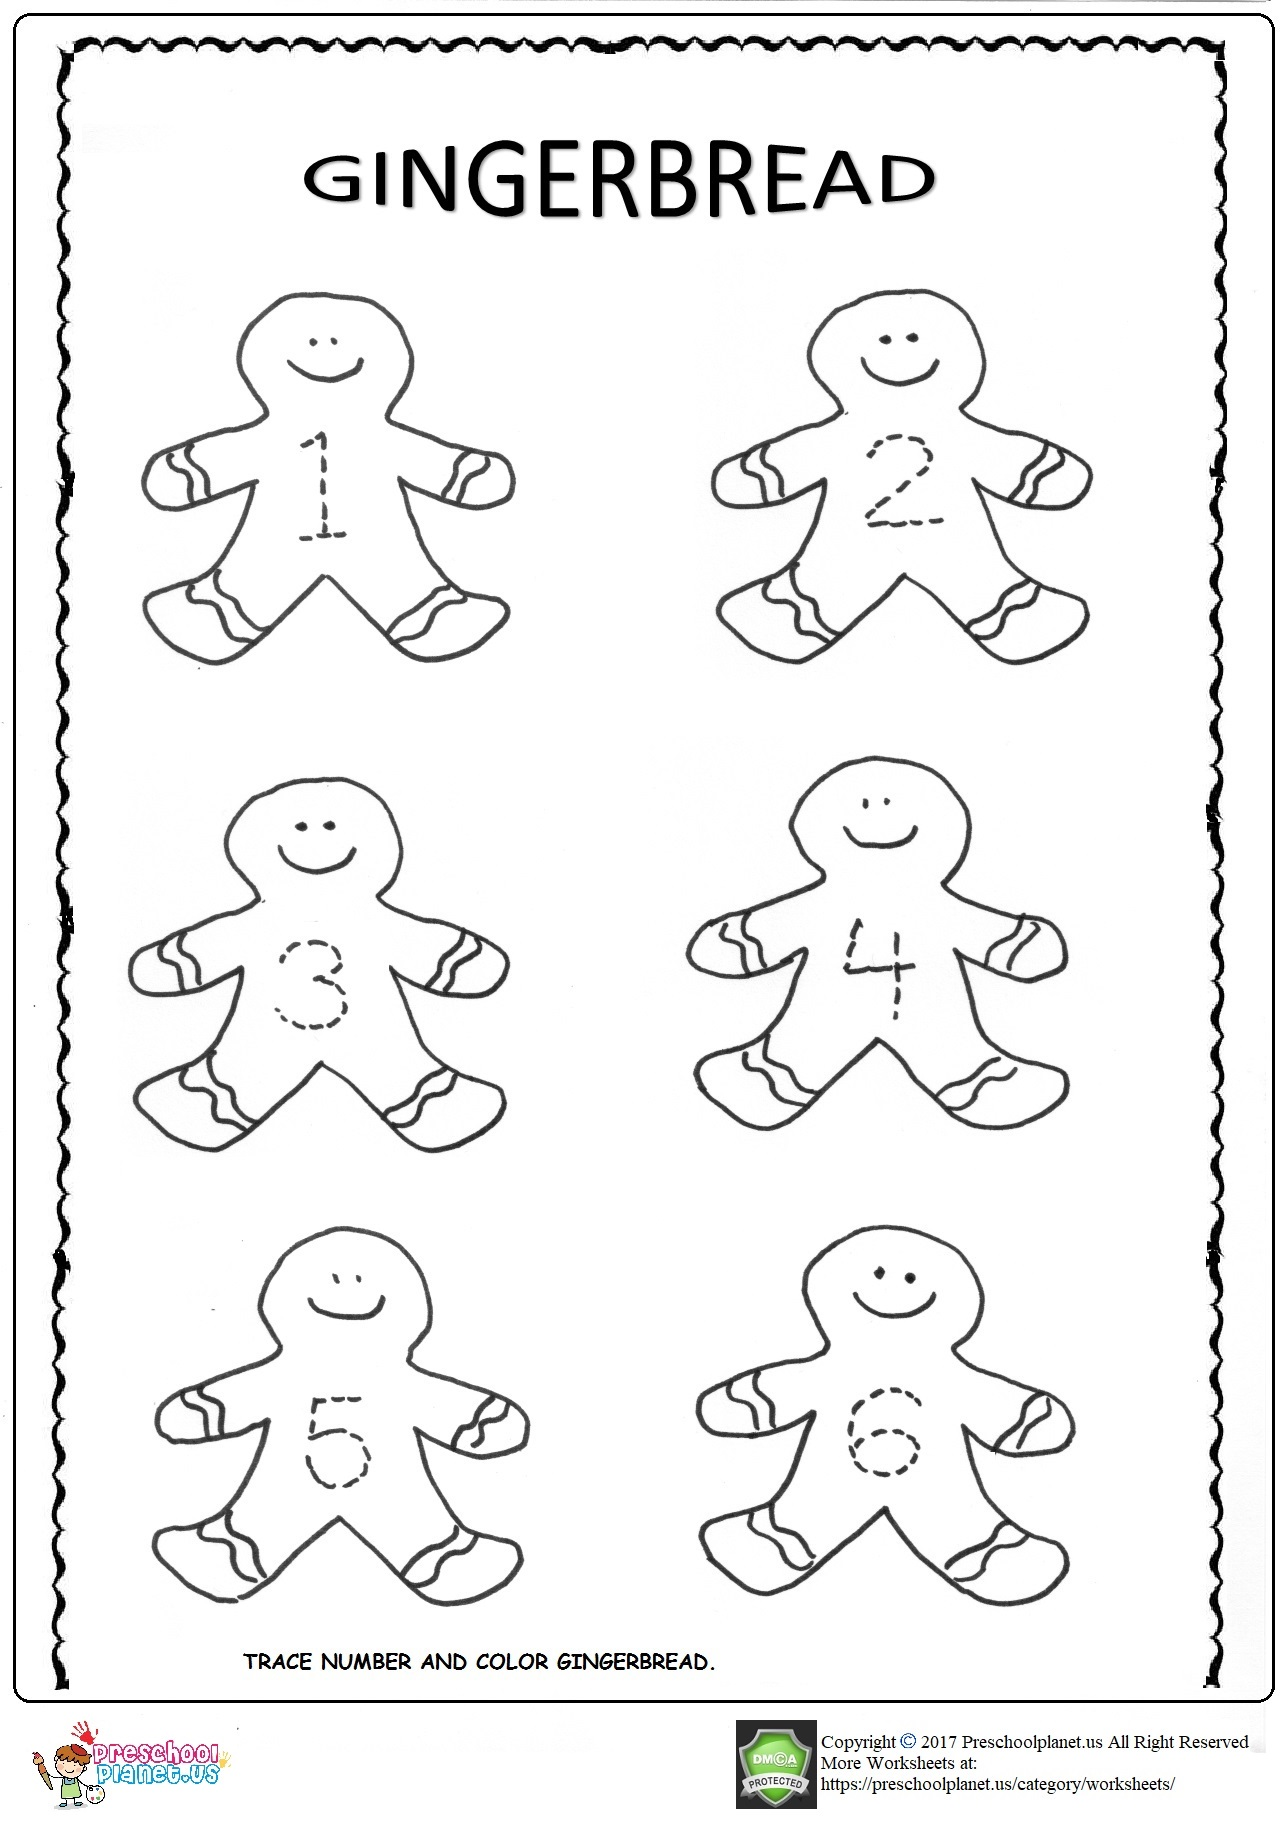 Gingerbread trace worksheets